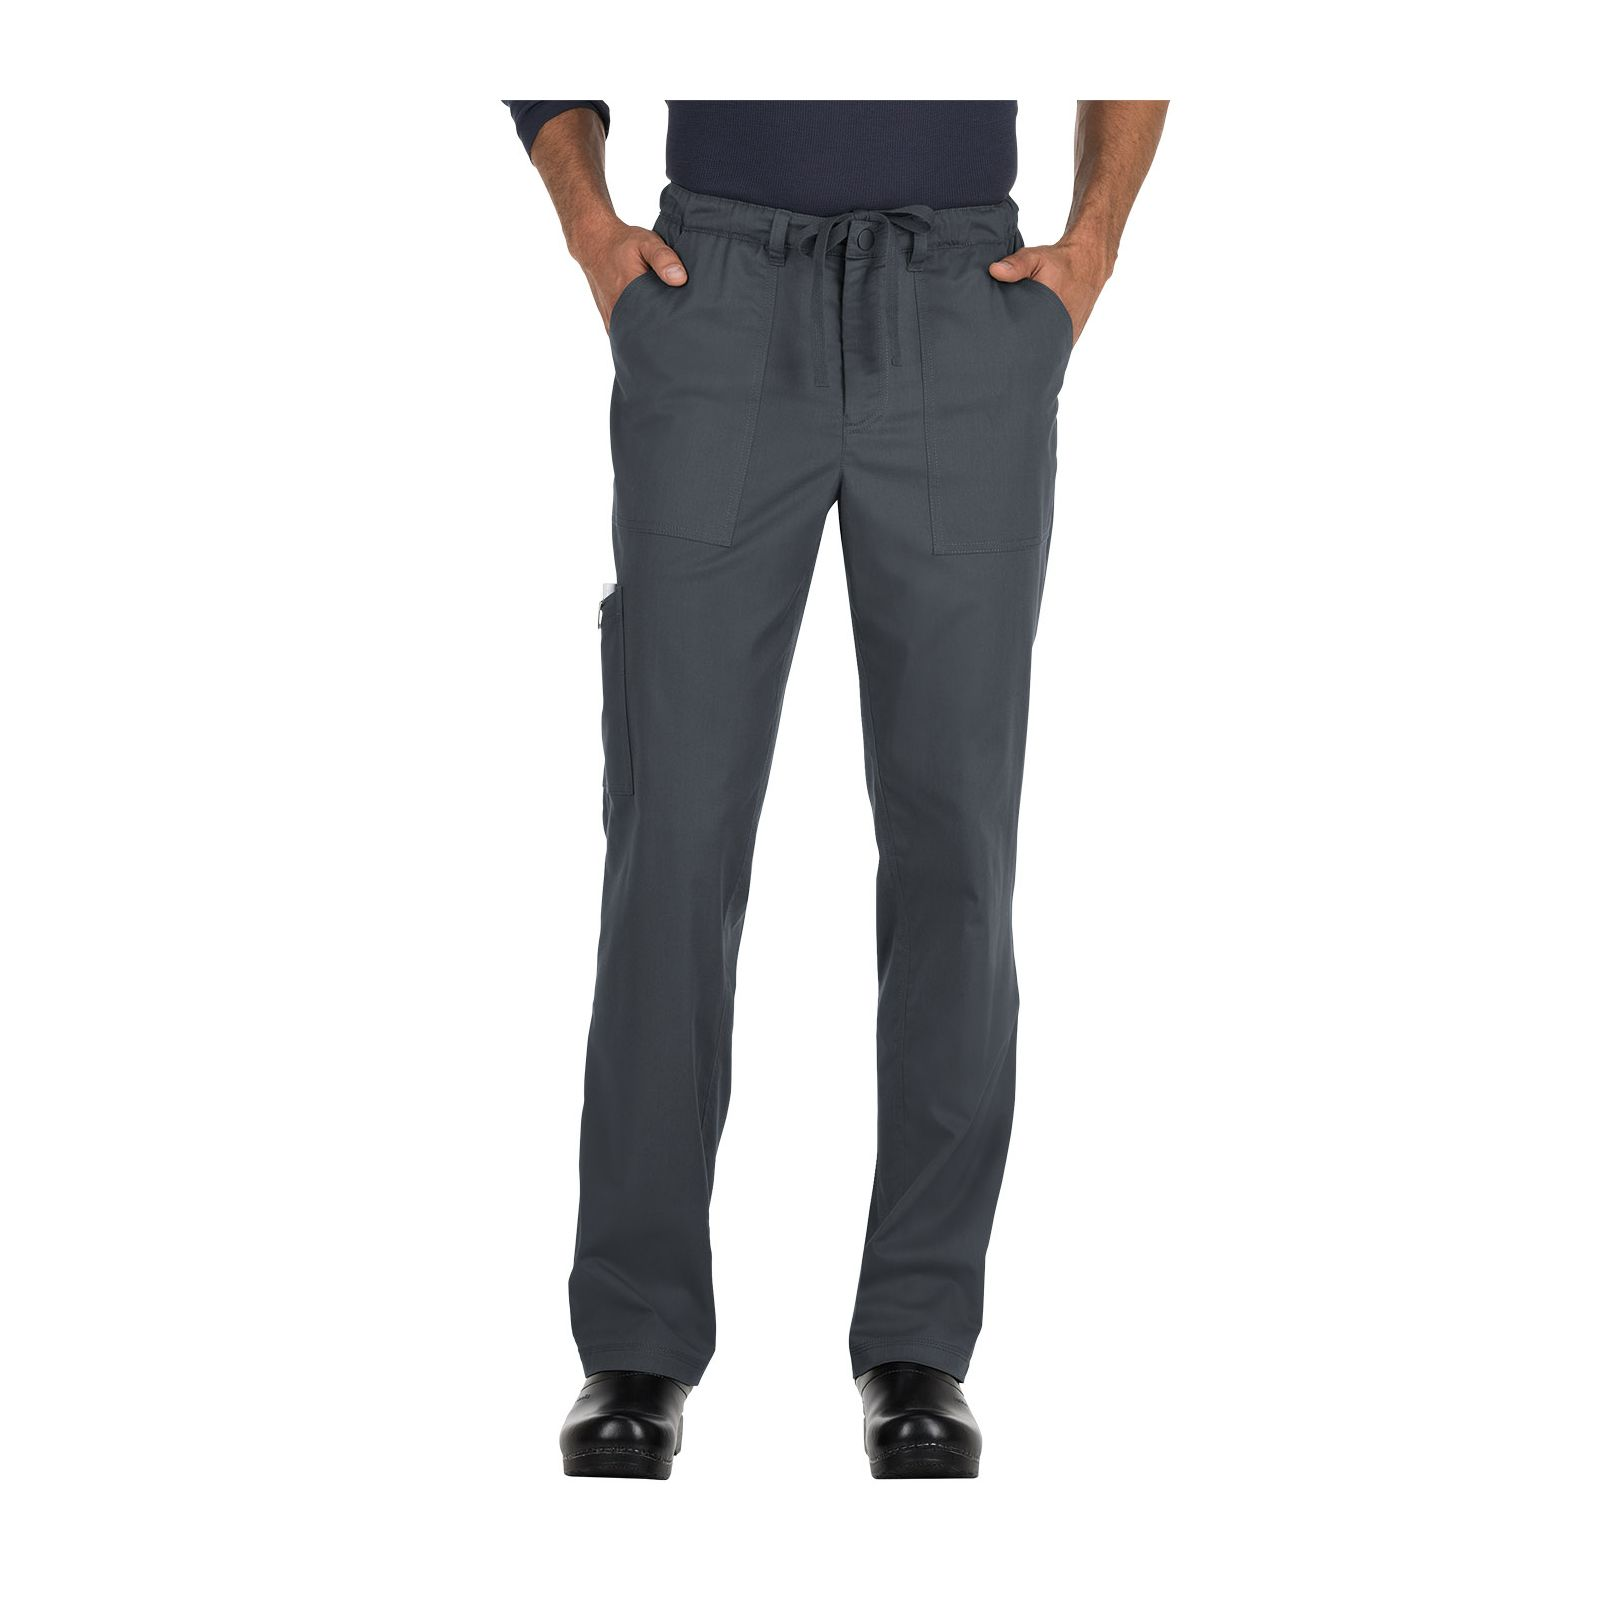 "Pantalon médical Homme Koi ""Ryan"", collection ""Koi Stretch"" (604-) gris anthracite face"